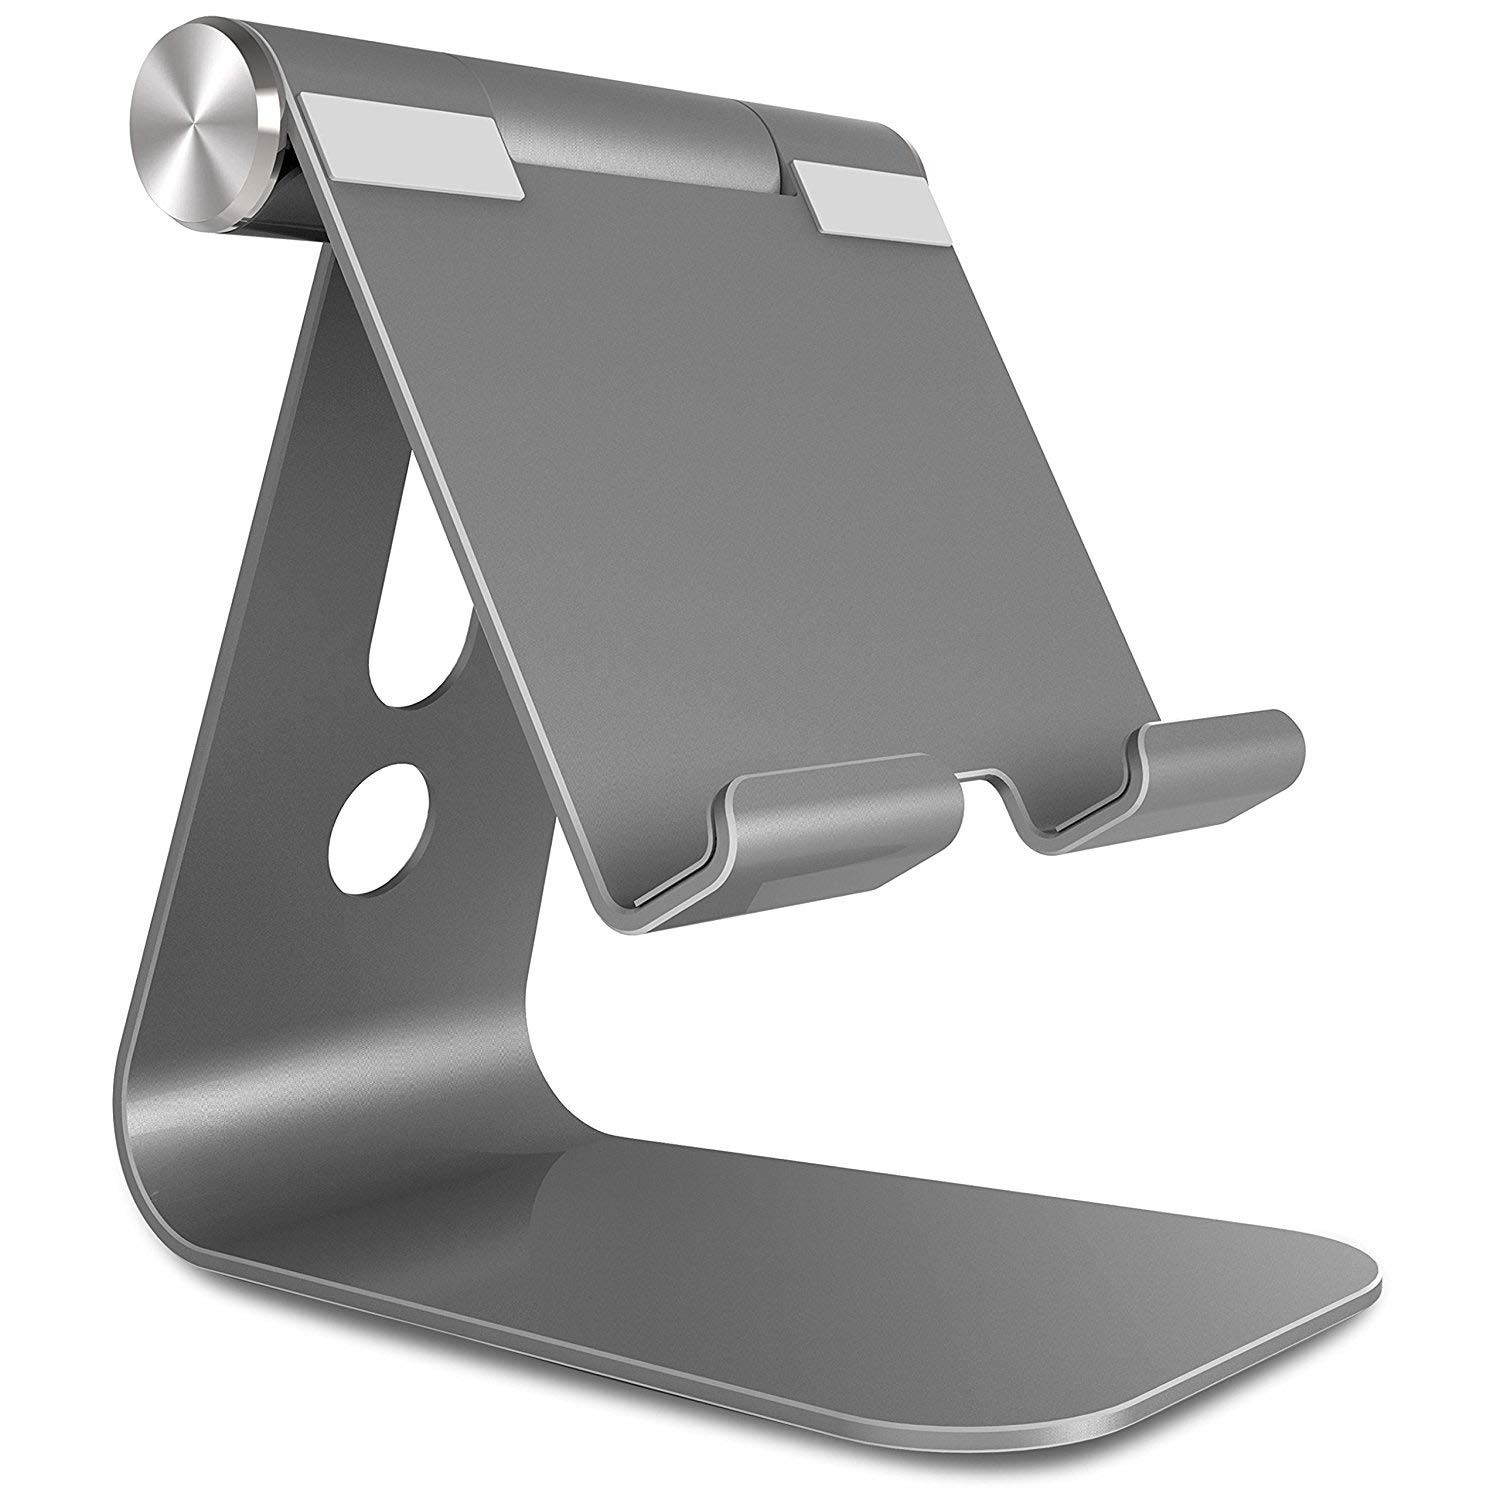 Tablet Stand, BONUSIS Cell Phone Holder Adjustable Tablet Holder Aluminum Alloy Desktop Cell Phone Stand Universal 240 Degree Multi-Angle Rotatable for 4-13 inch Devices [Gray] A1